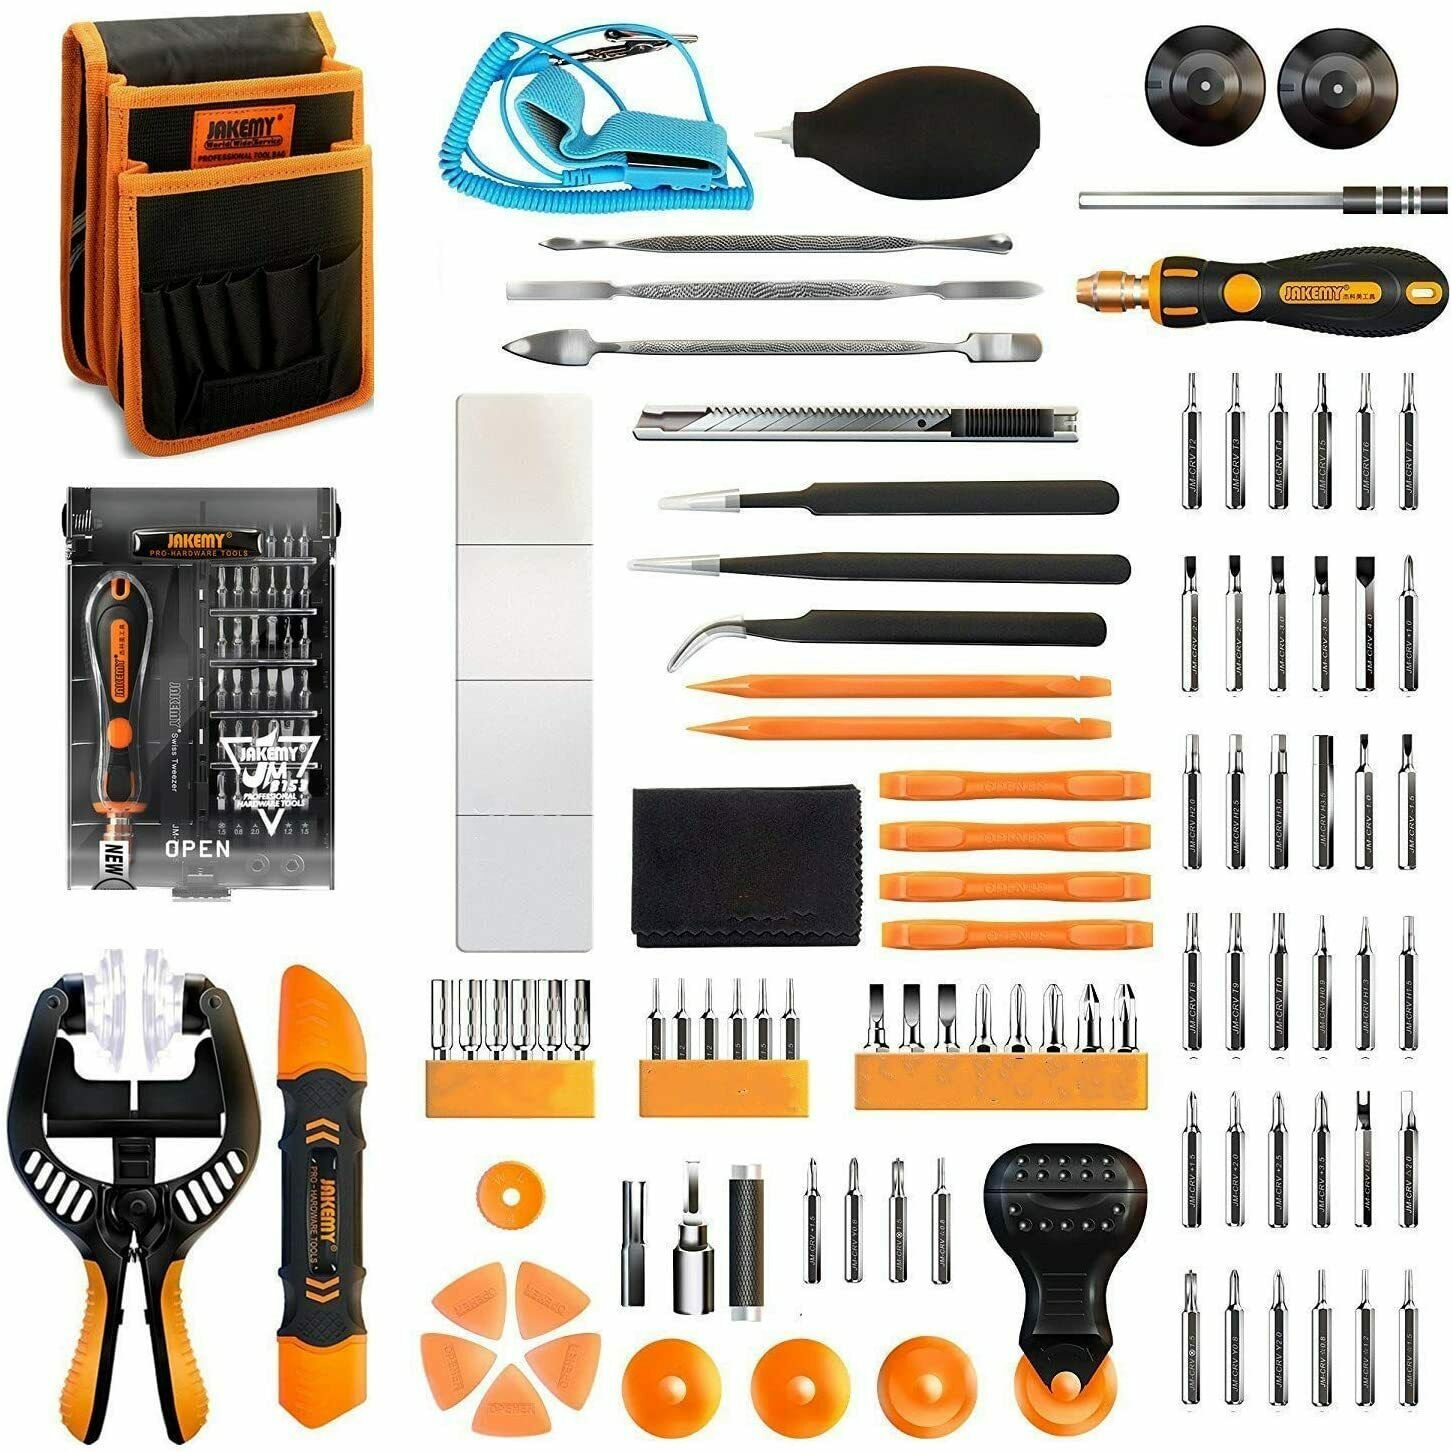 99 Pcs Repair Tools Set Kit for iPhone Tablets Cell Phone Computers Screwdriver